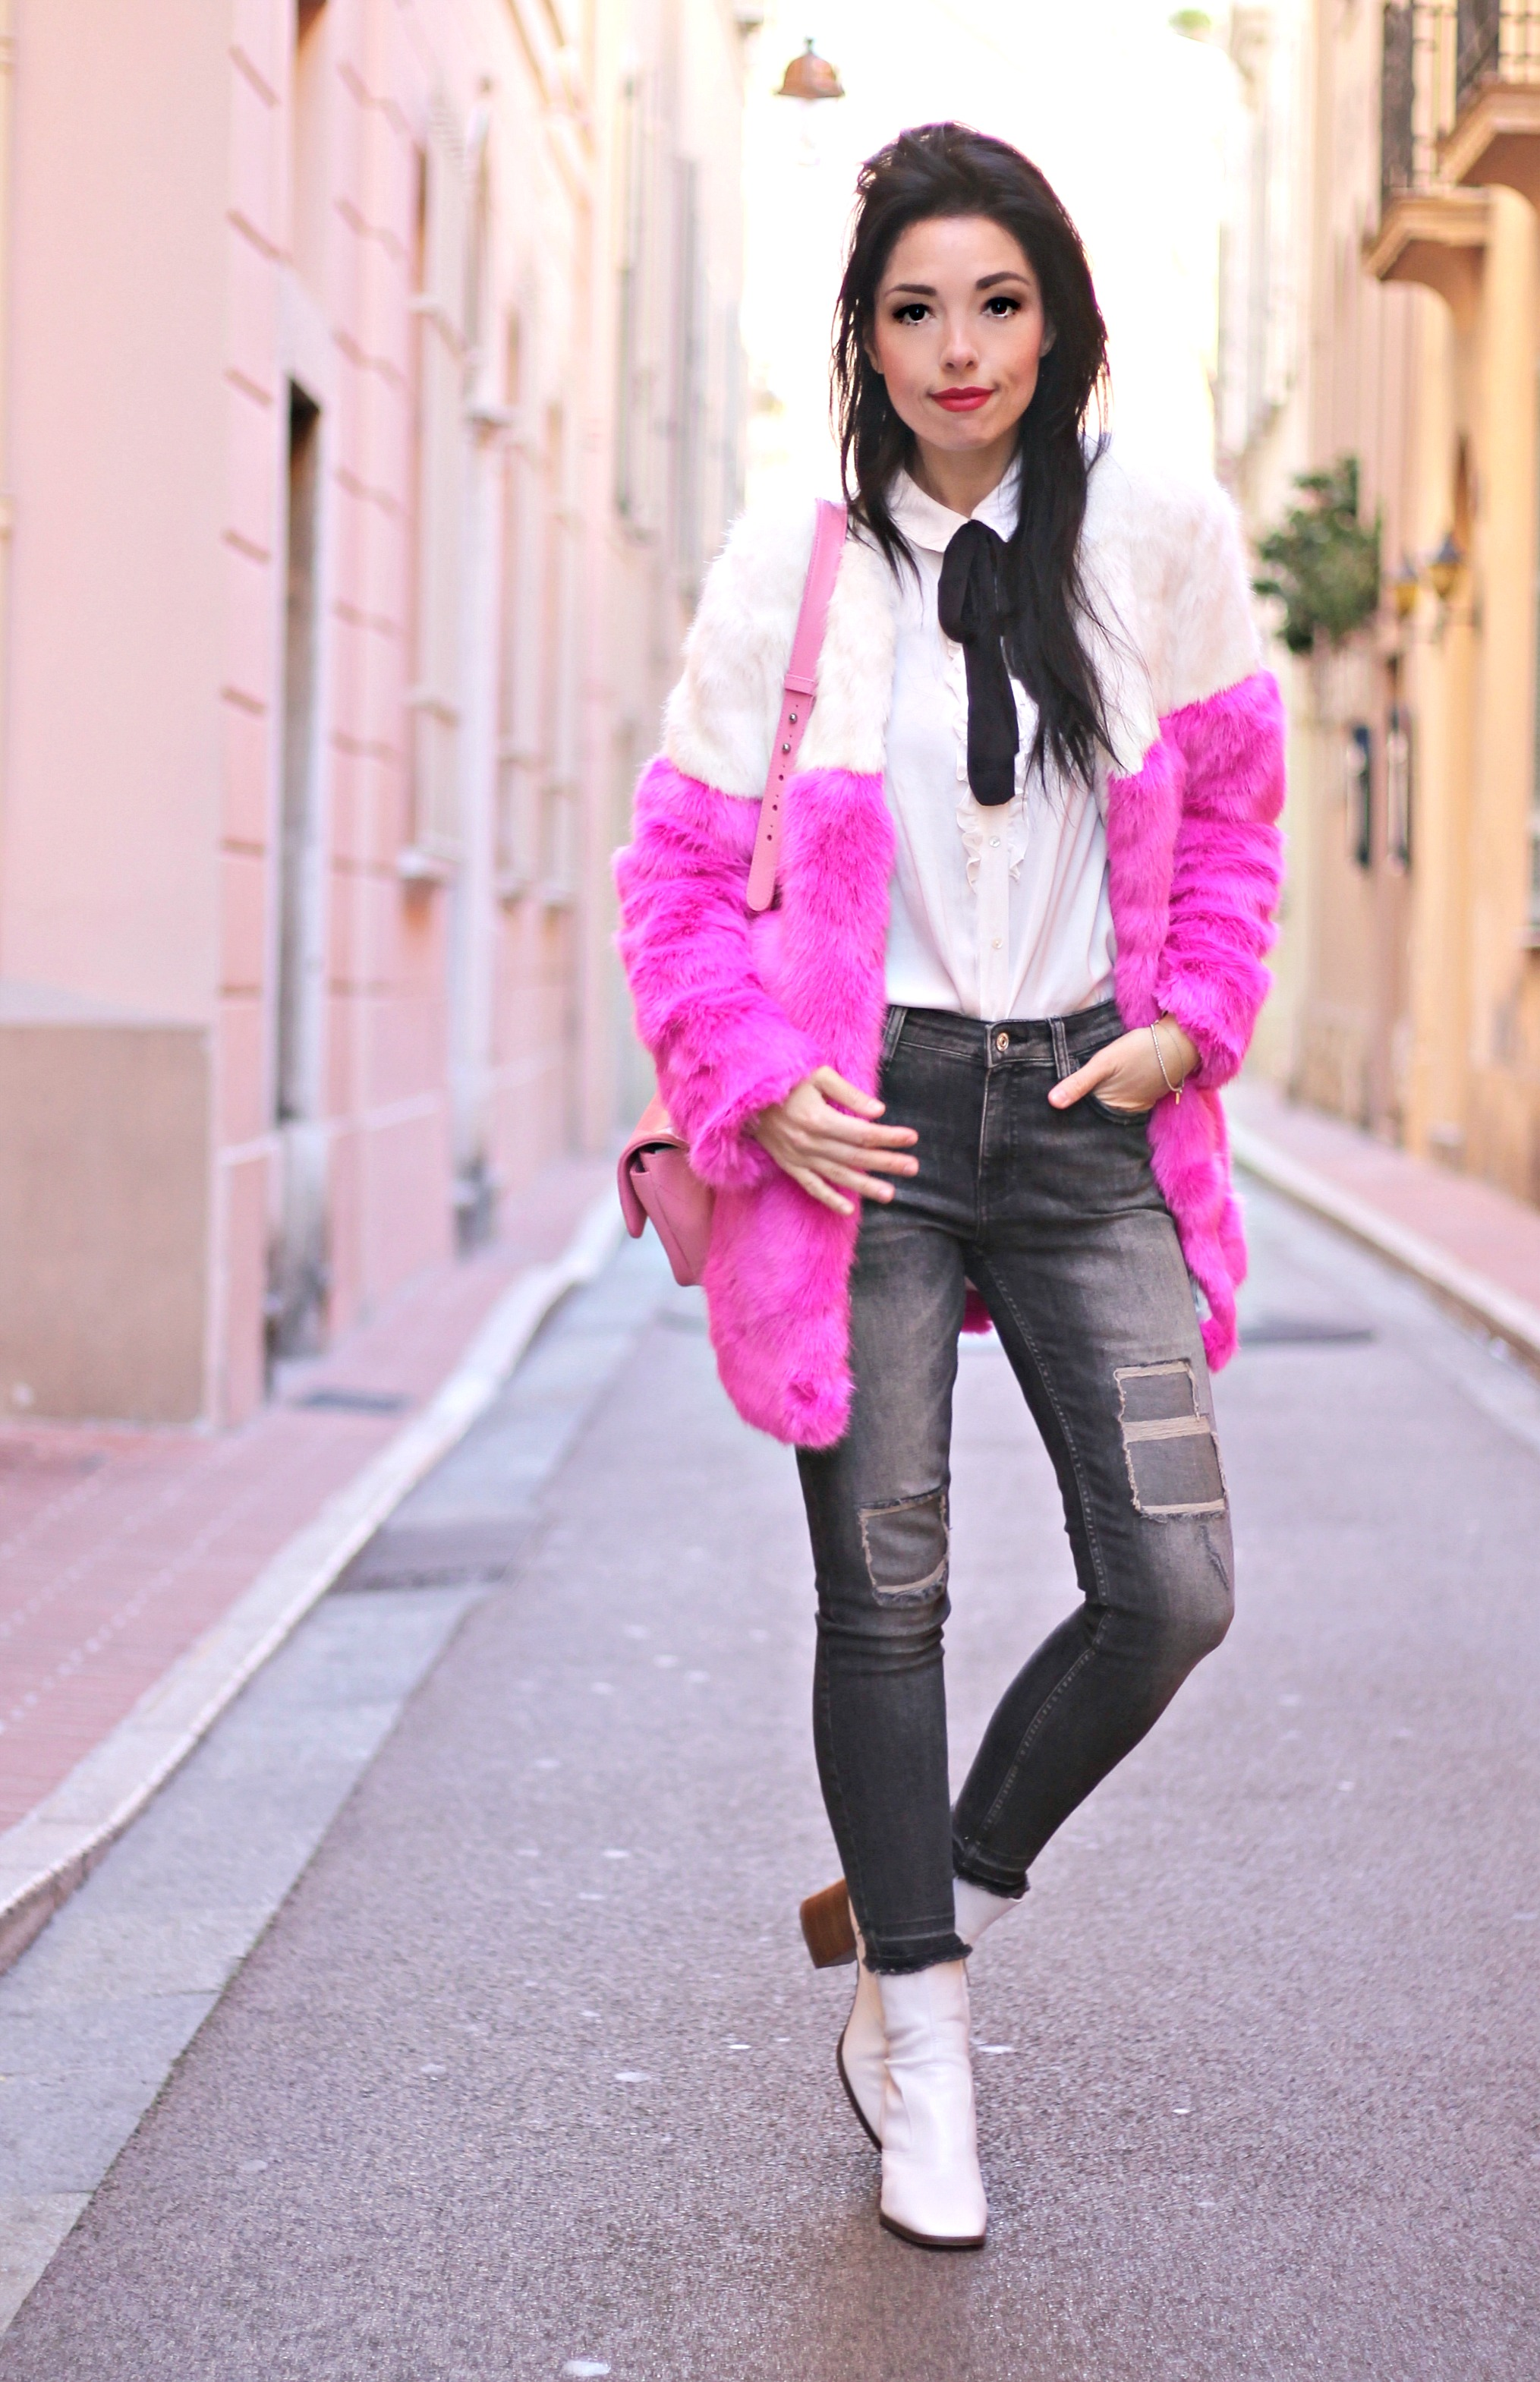 Accrediti sfilate Milano, theladycracy.it, elisa bellino, pink chanel, stivaletti zara ss 2016, chanel bag 2016, jeans mango 2016, pelliccia asos 2016, faux fur asos, fashion blog italia, fashion blogger italiane, fashion blogger outfit, fashion blogger famose italia,